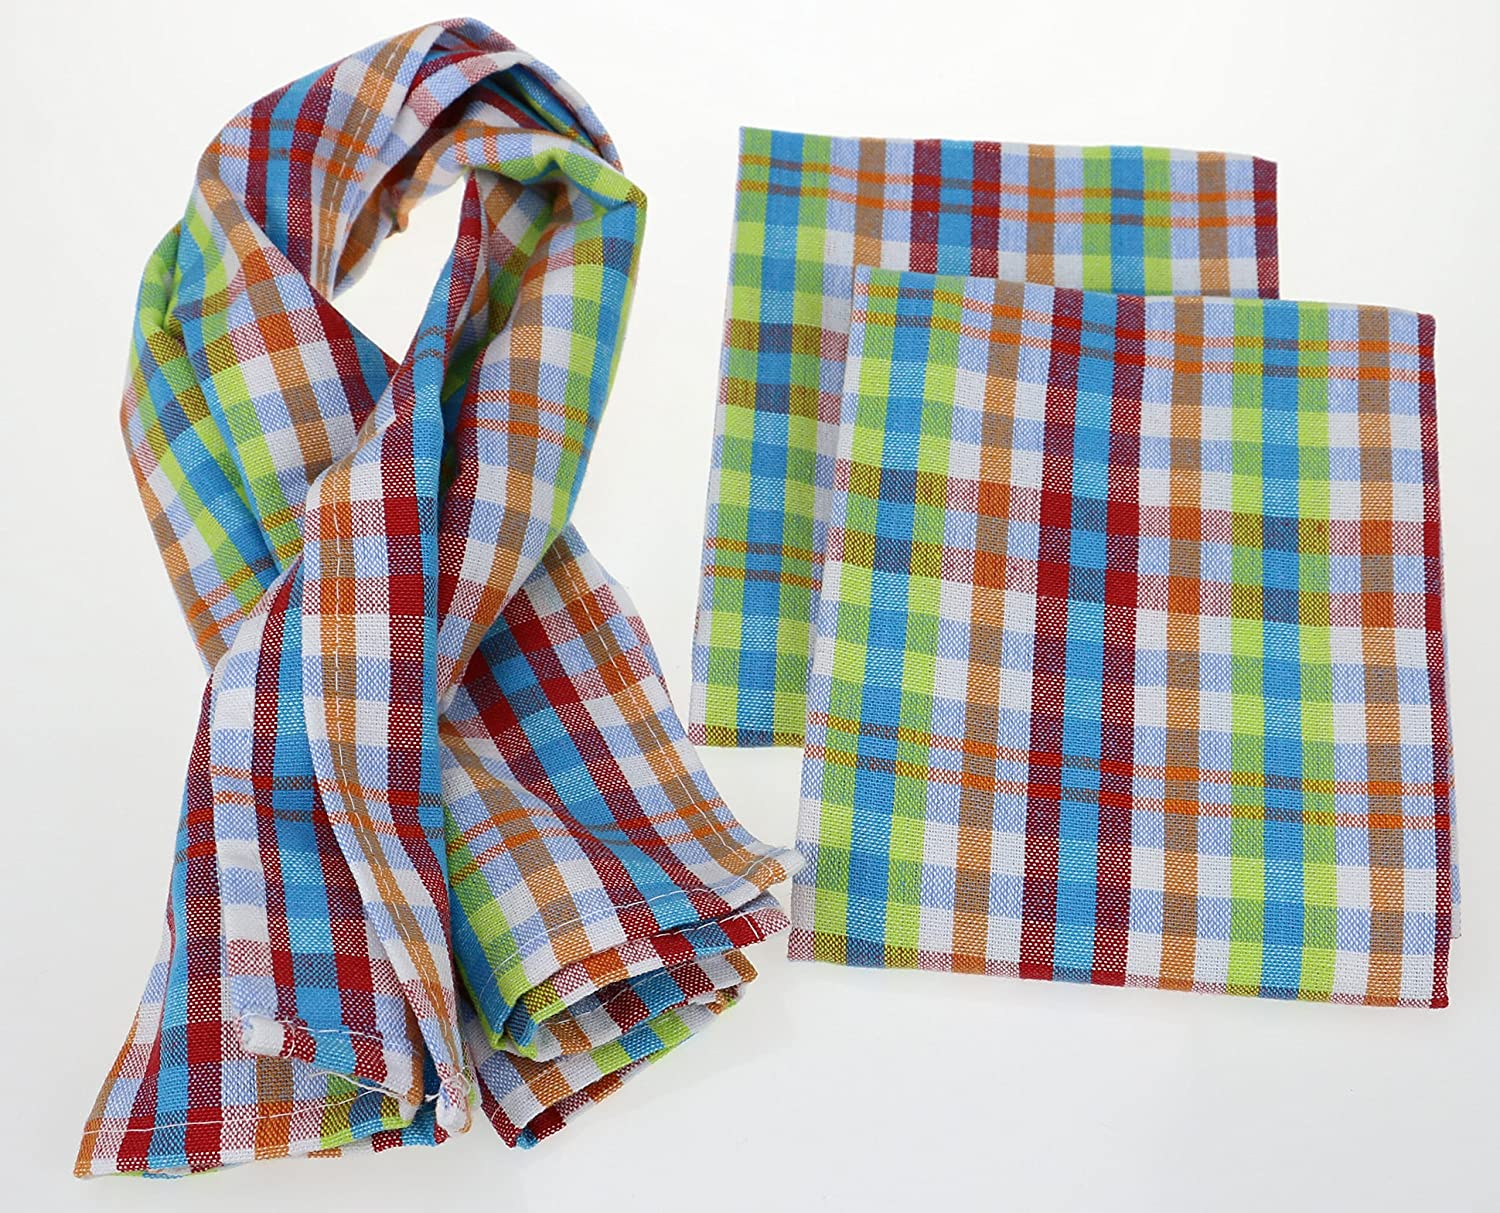 100/% Natural Cotton Multi Plaid 3 Pack Dish Cloth 16 x 24 Inch The Best Tea Towels Machine Washable Absorbent and Lint-Free Classic Kitchen Towels